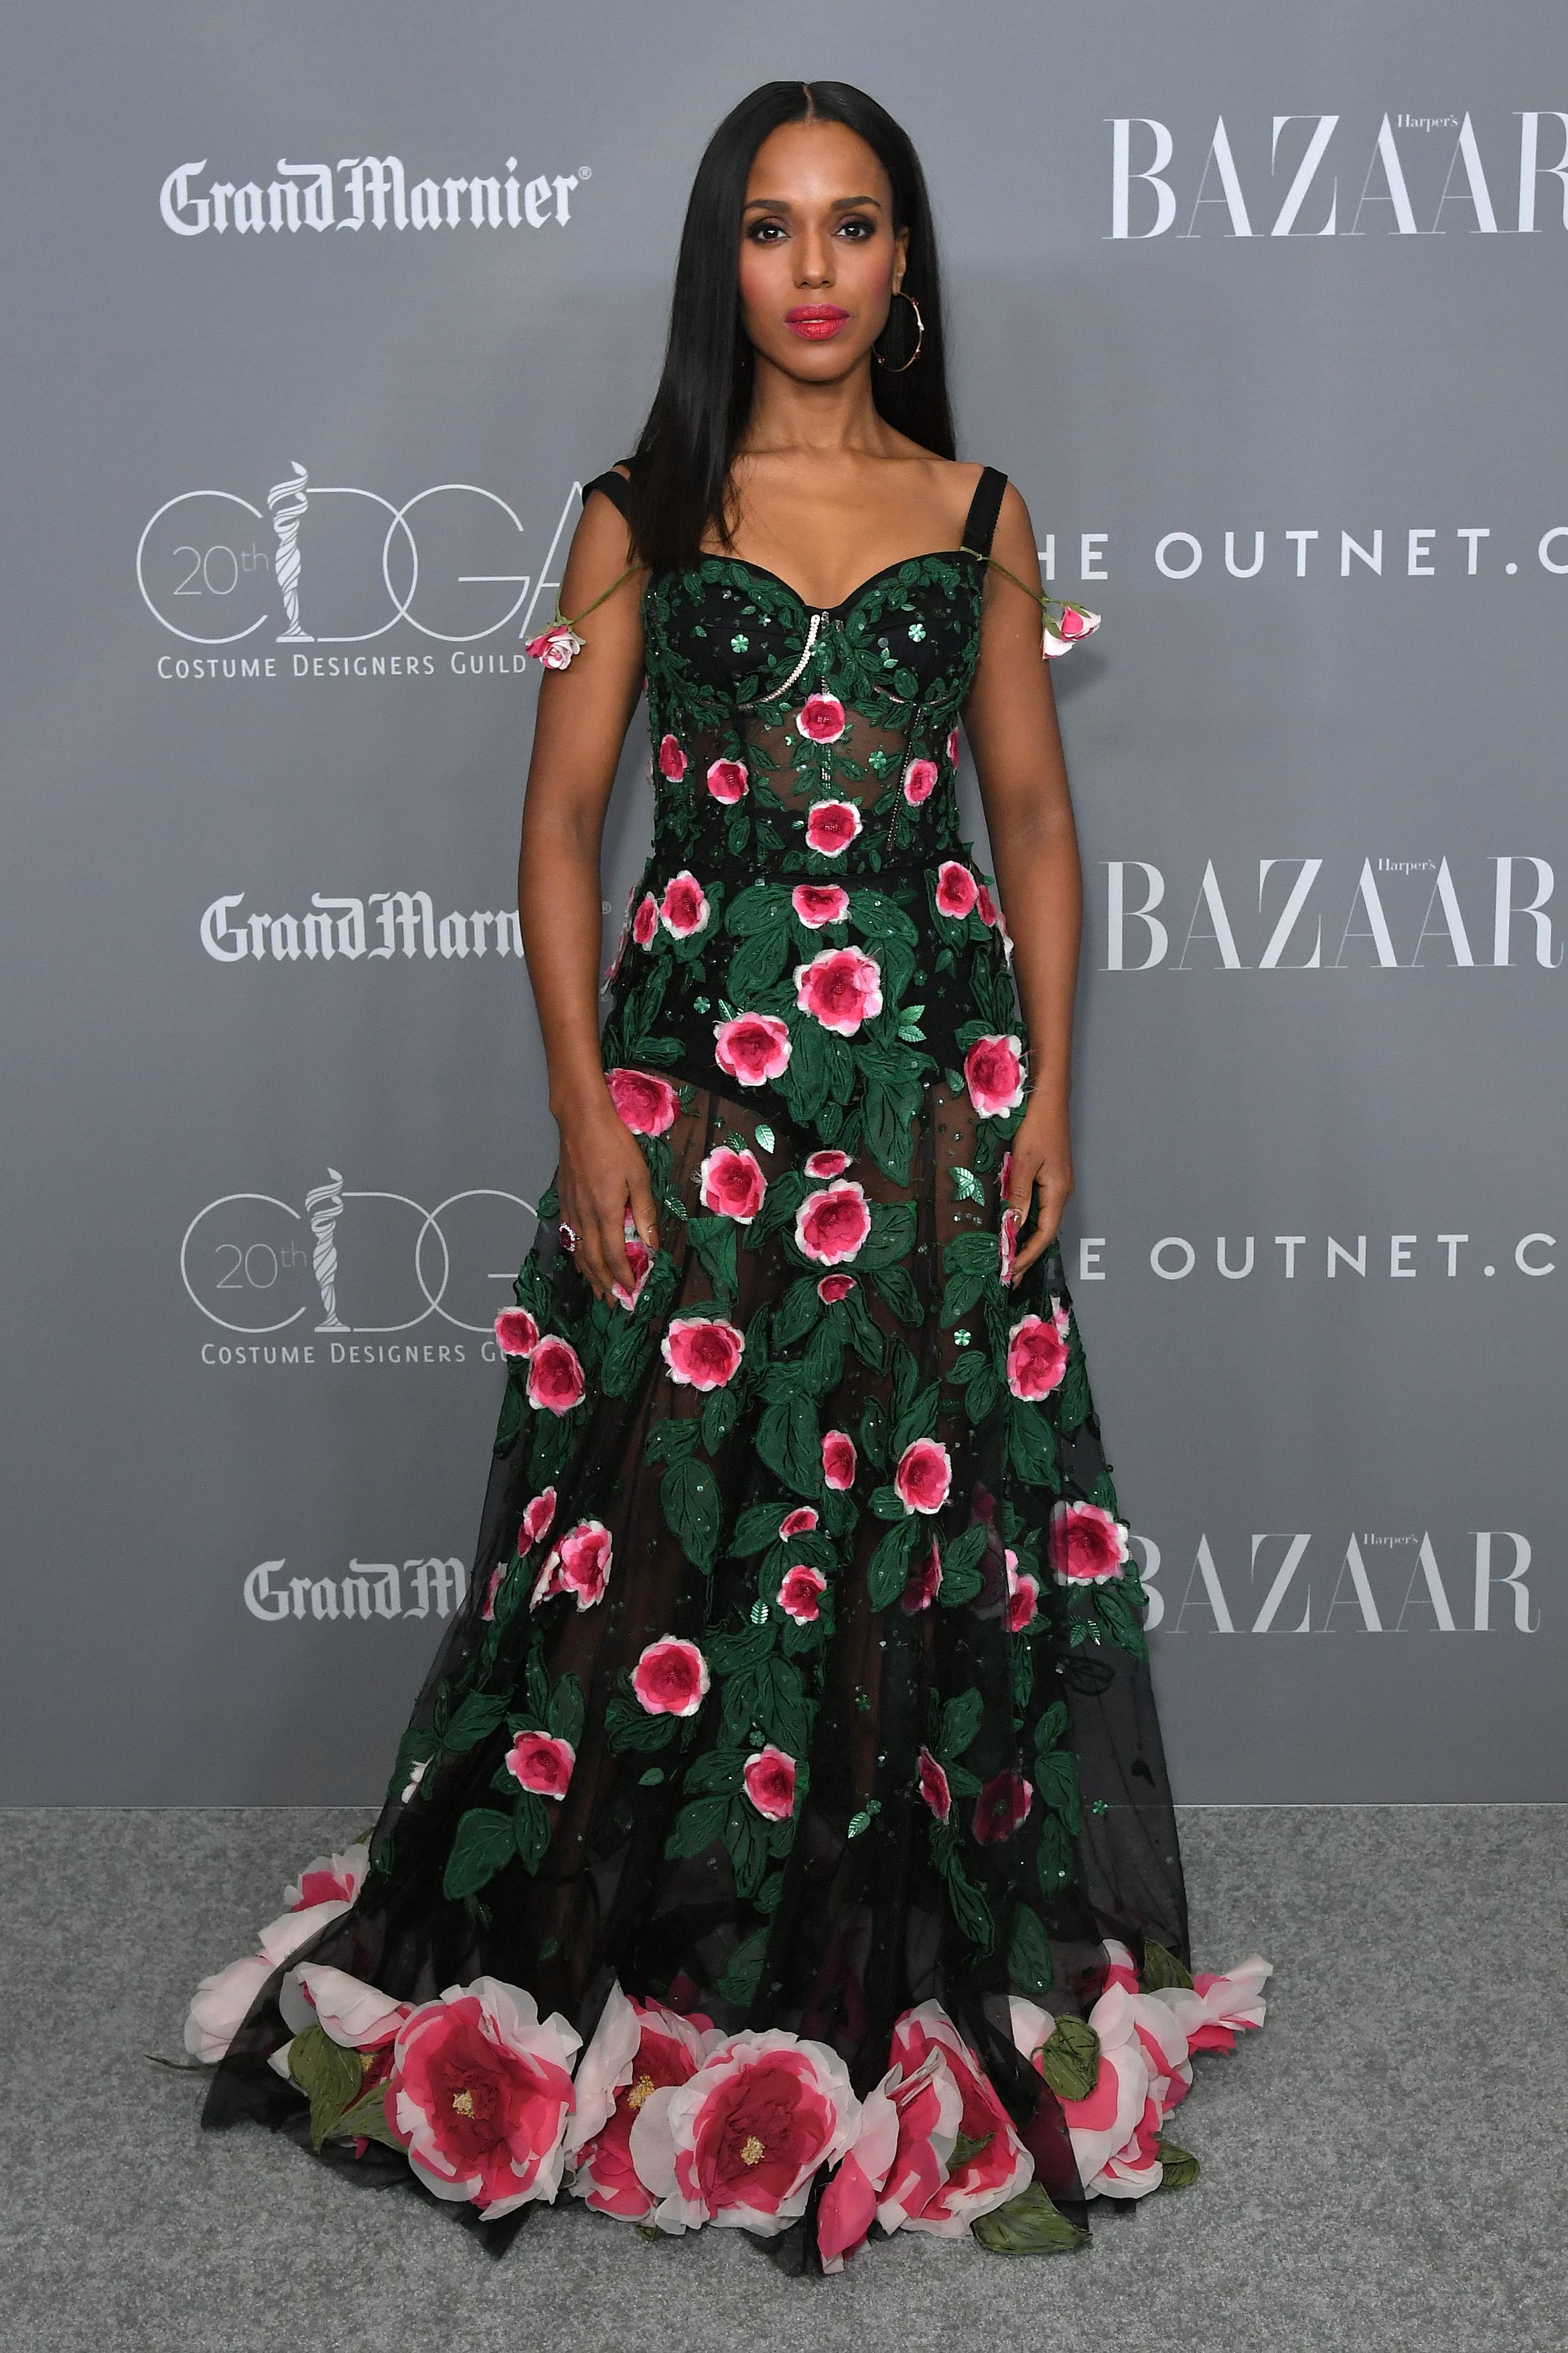 Kerry Washington attends the 20th Annual Costume Designers Guild Awards in Los Angeles on Feb. 20, 2018.